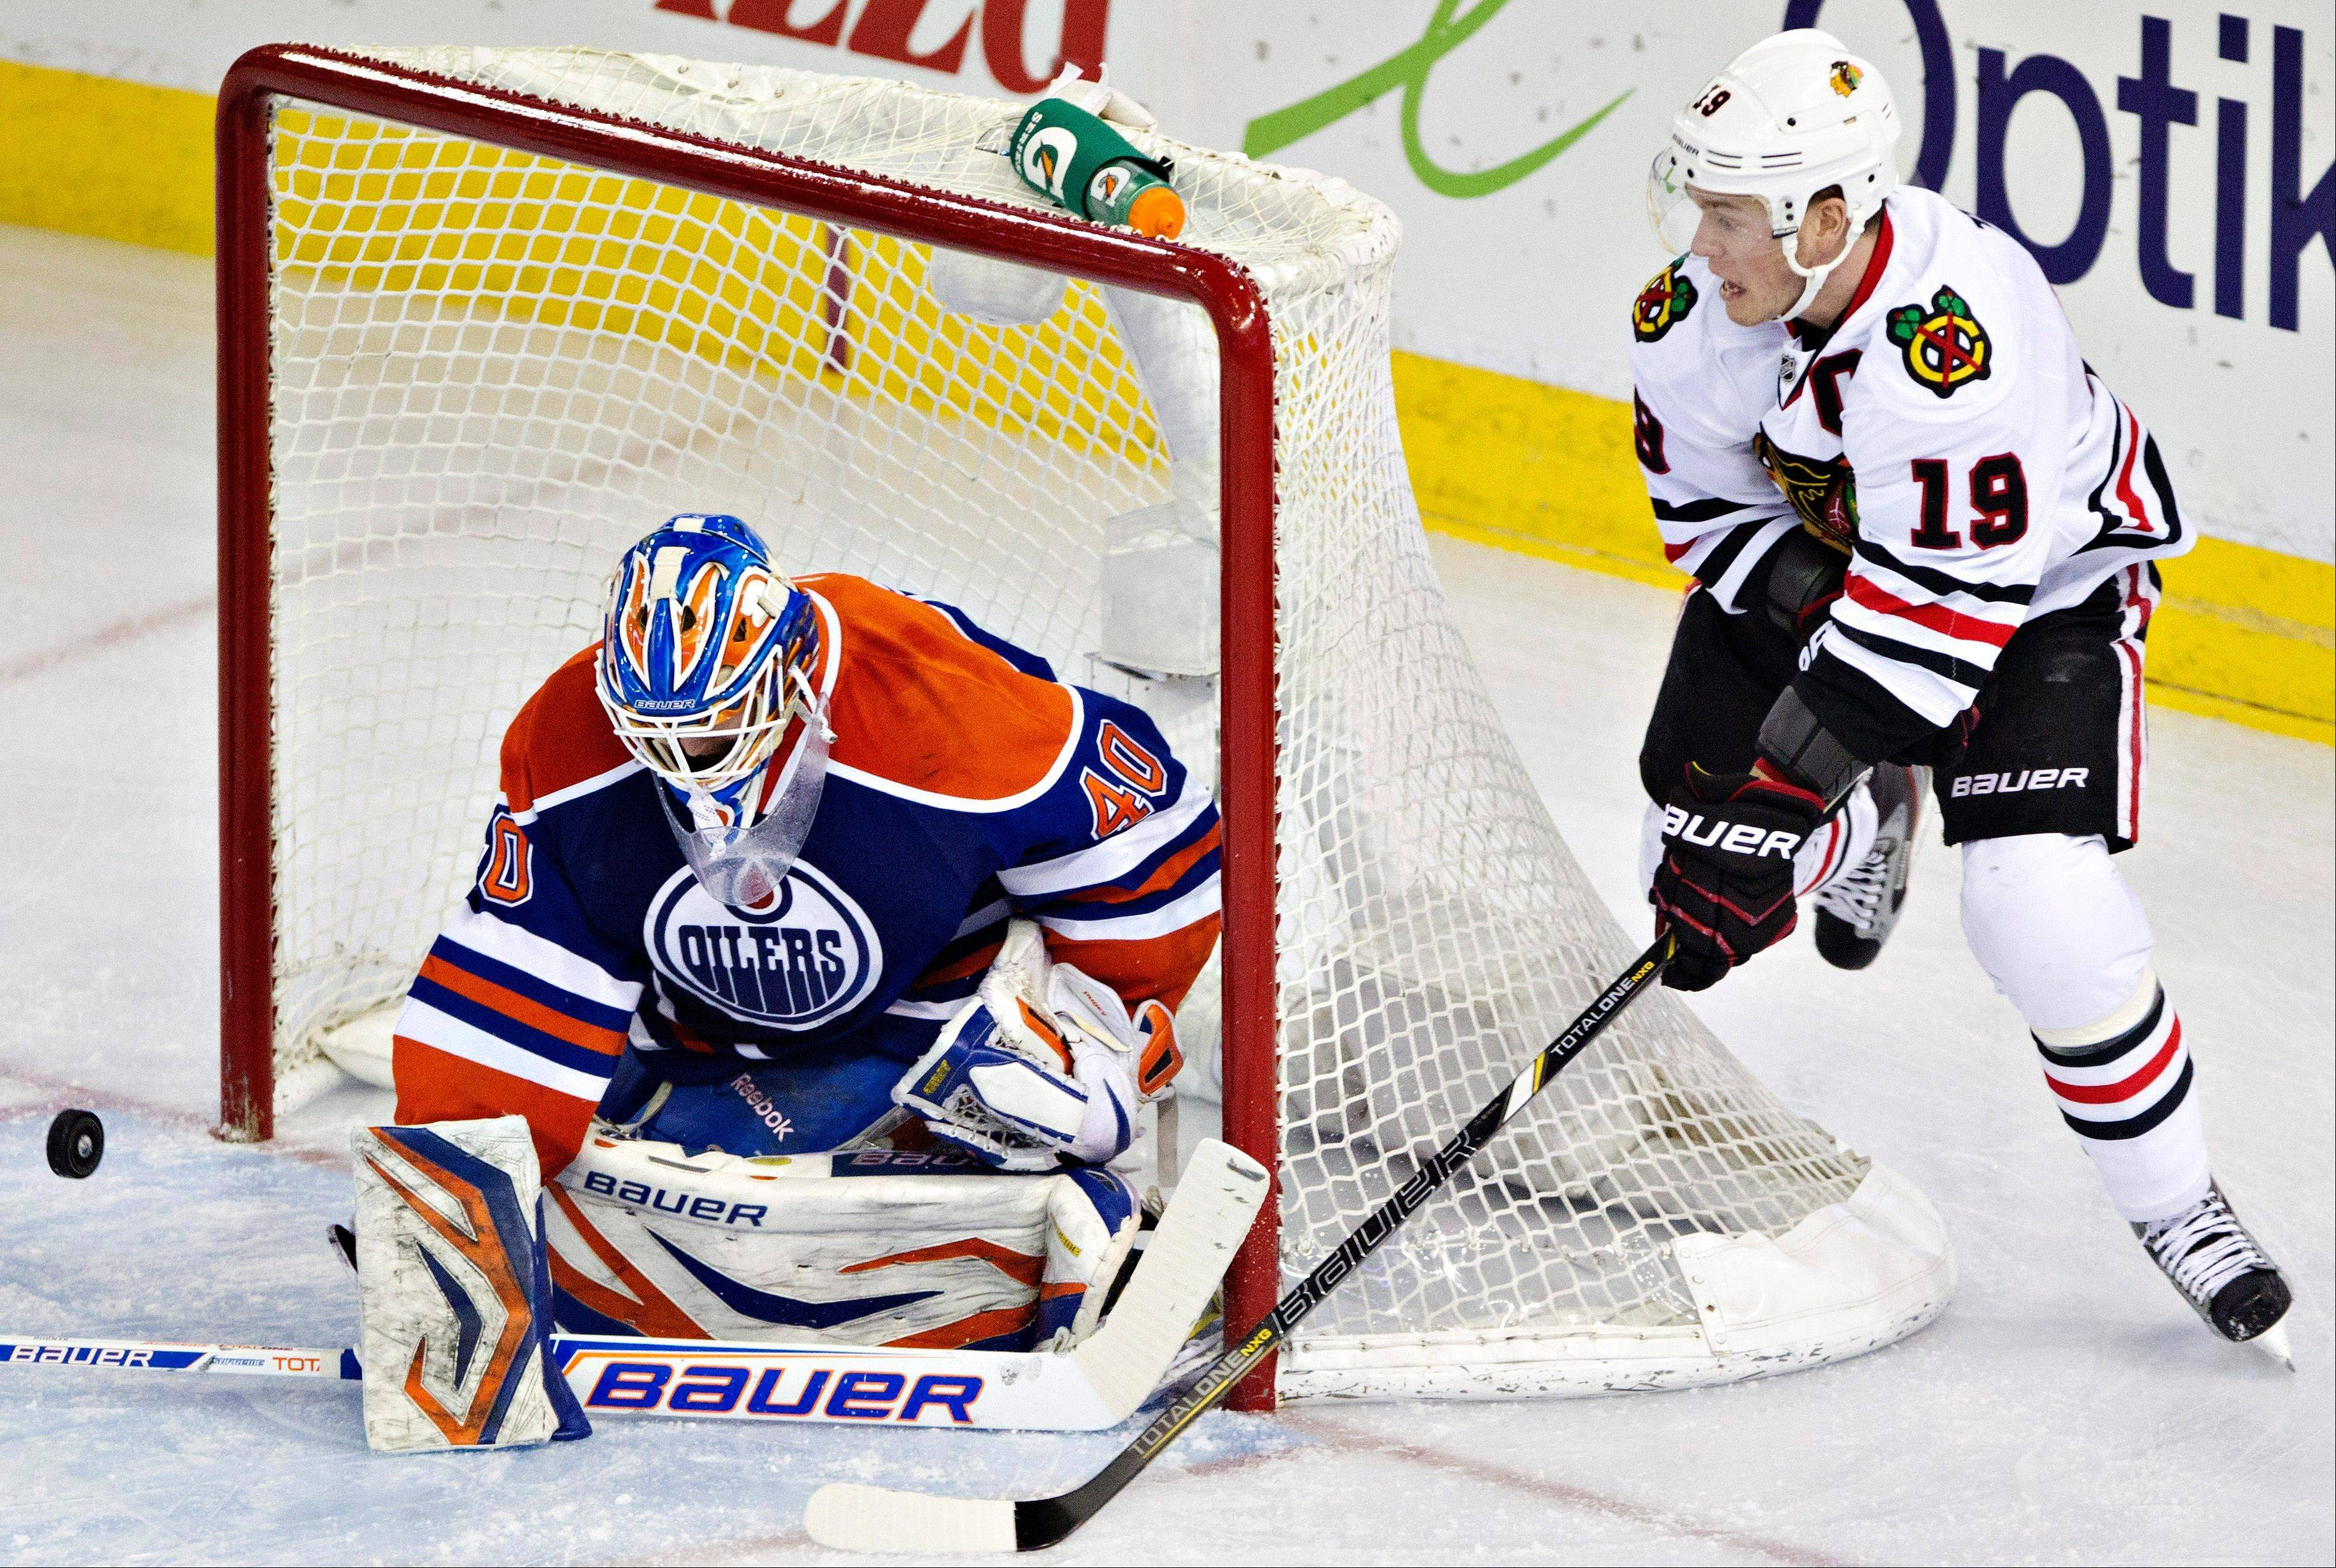 Jonathan Toews is stopped by Edmonton Oilers goalie Devan Dubnyk Wednesday night in Edmonton.